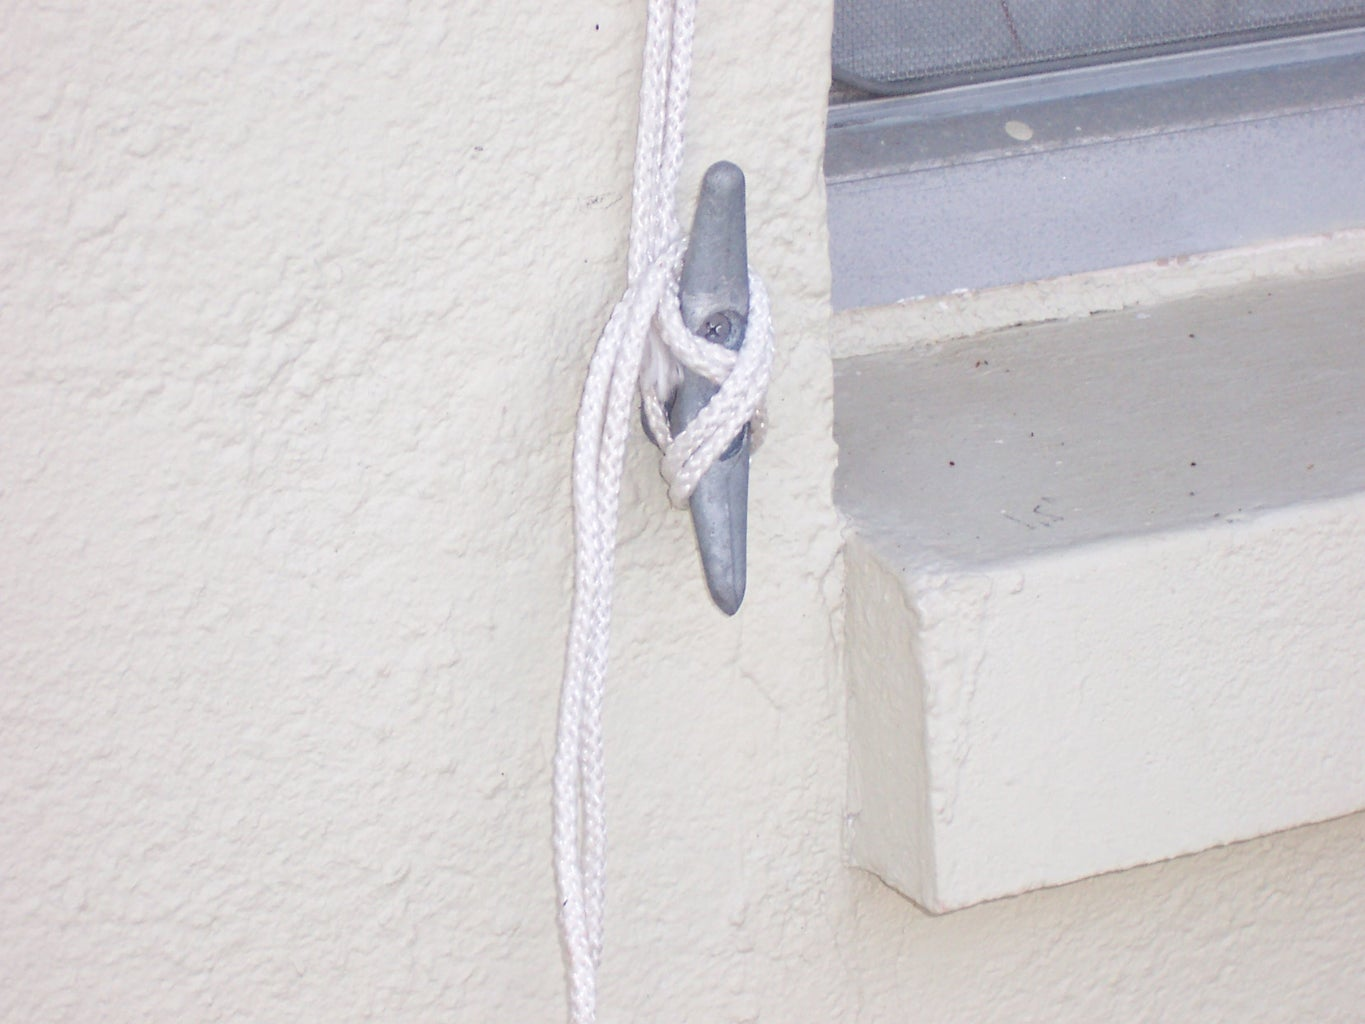 Cleat Hold Awning Retracted